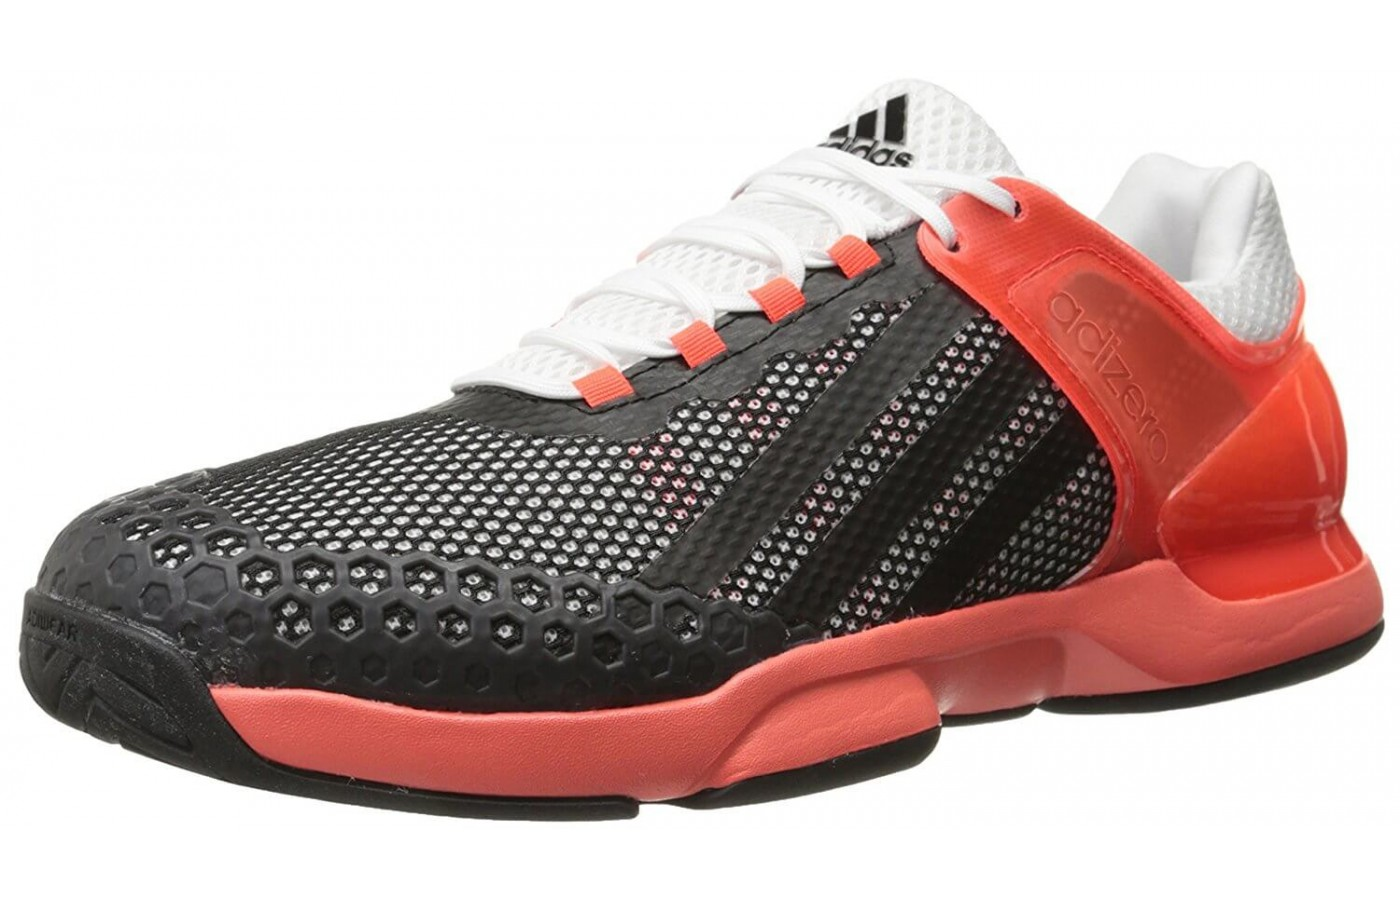 The Adidas Adizero Ubersonic is a tennis shoe designed for stability and protection.